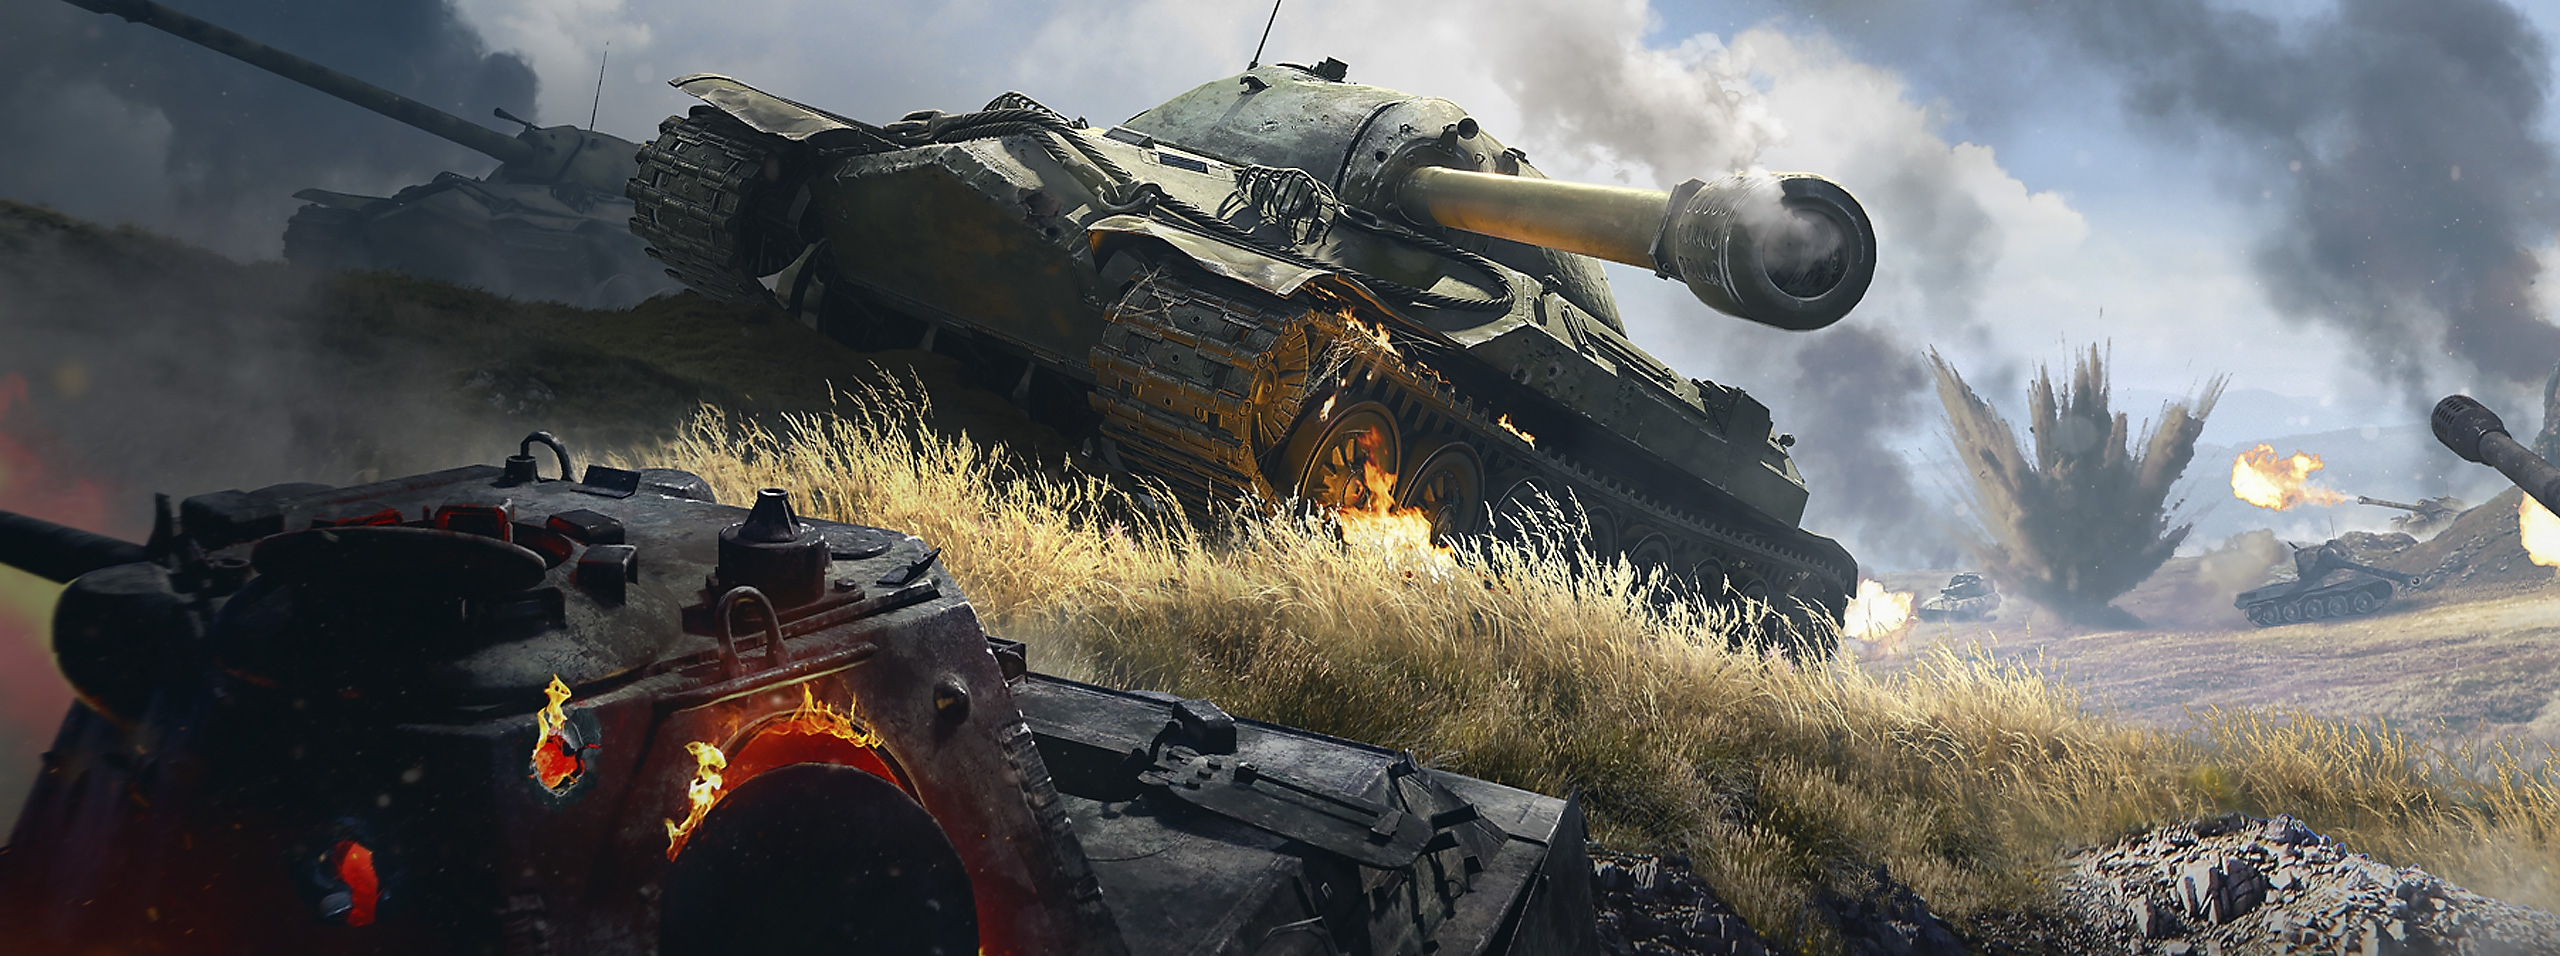 World of Tanks key art